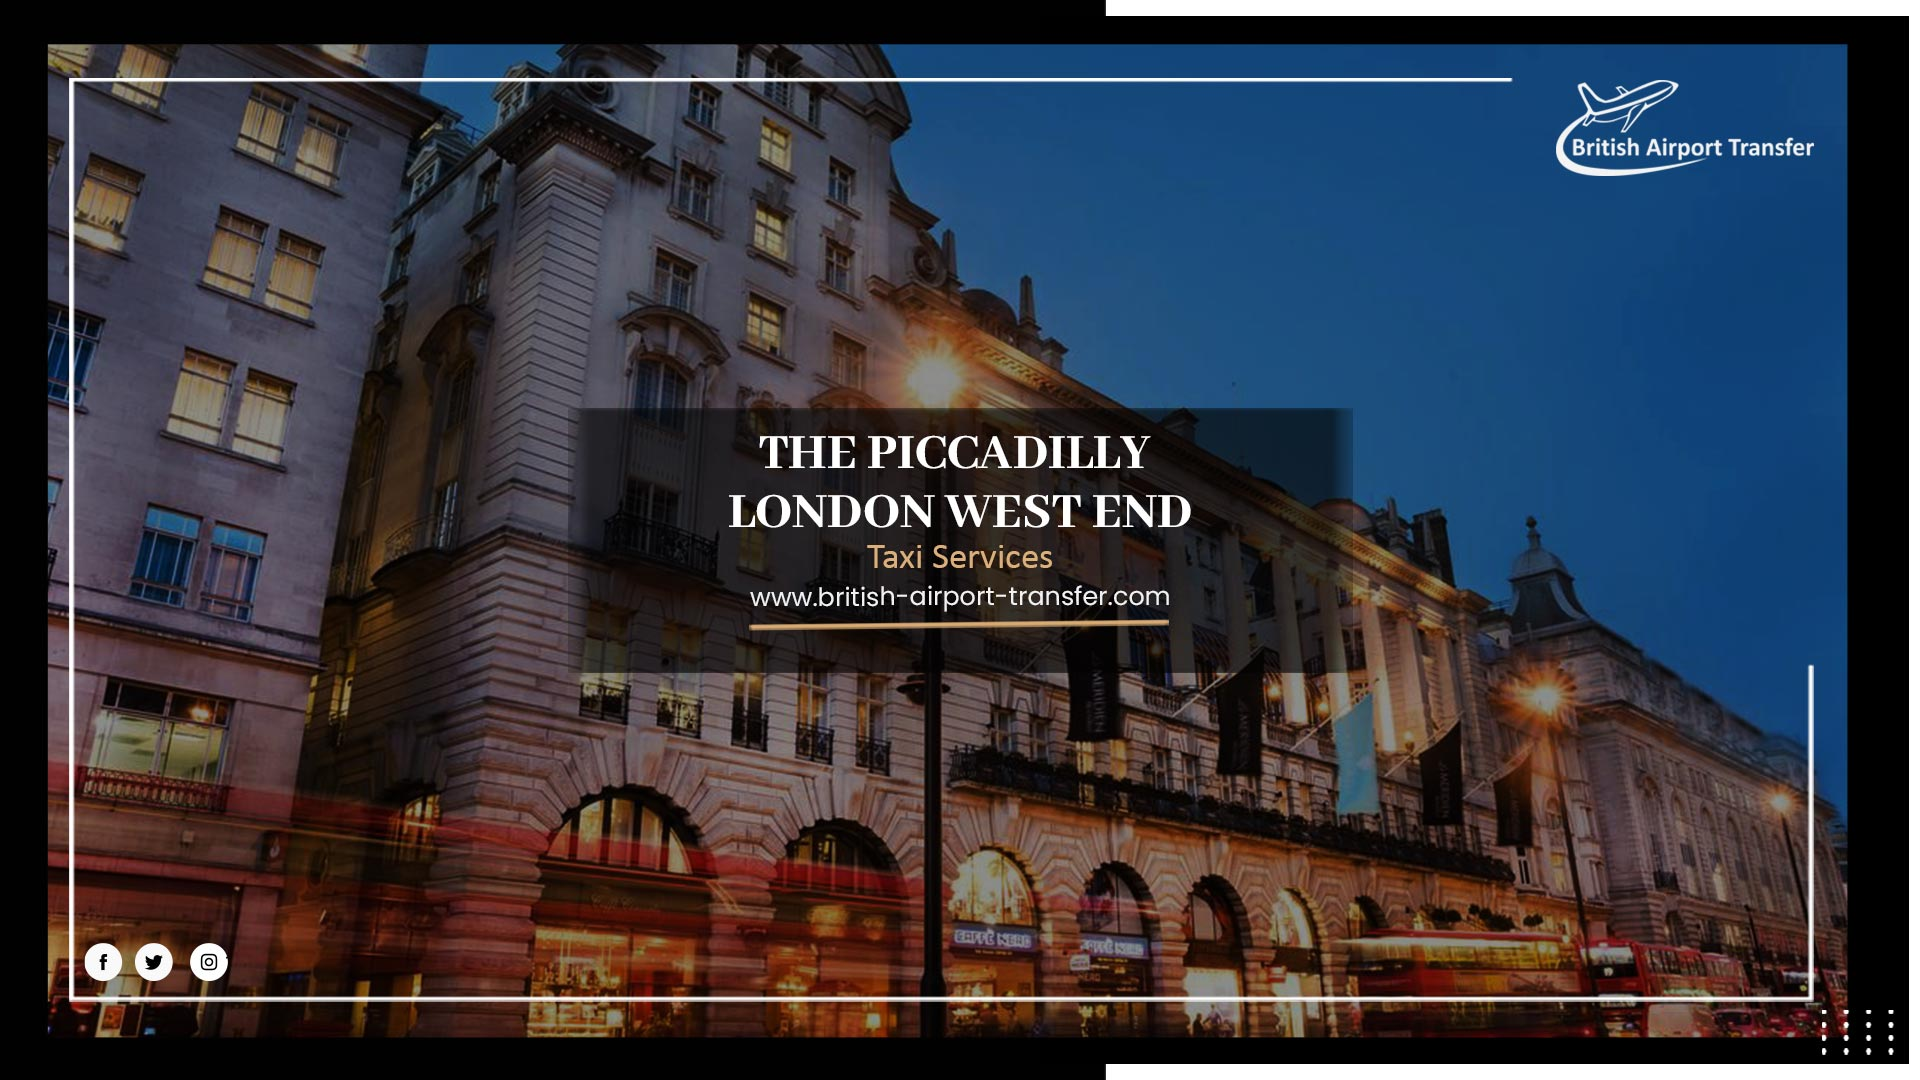 Taxi Cab – The Piccadilly London West End / W1D 6EX